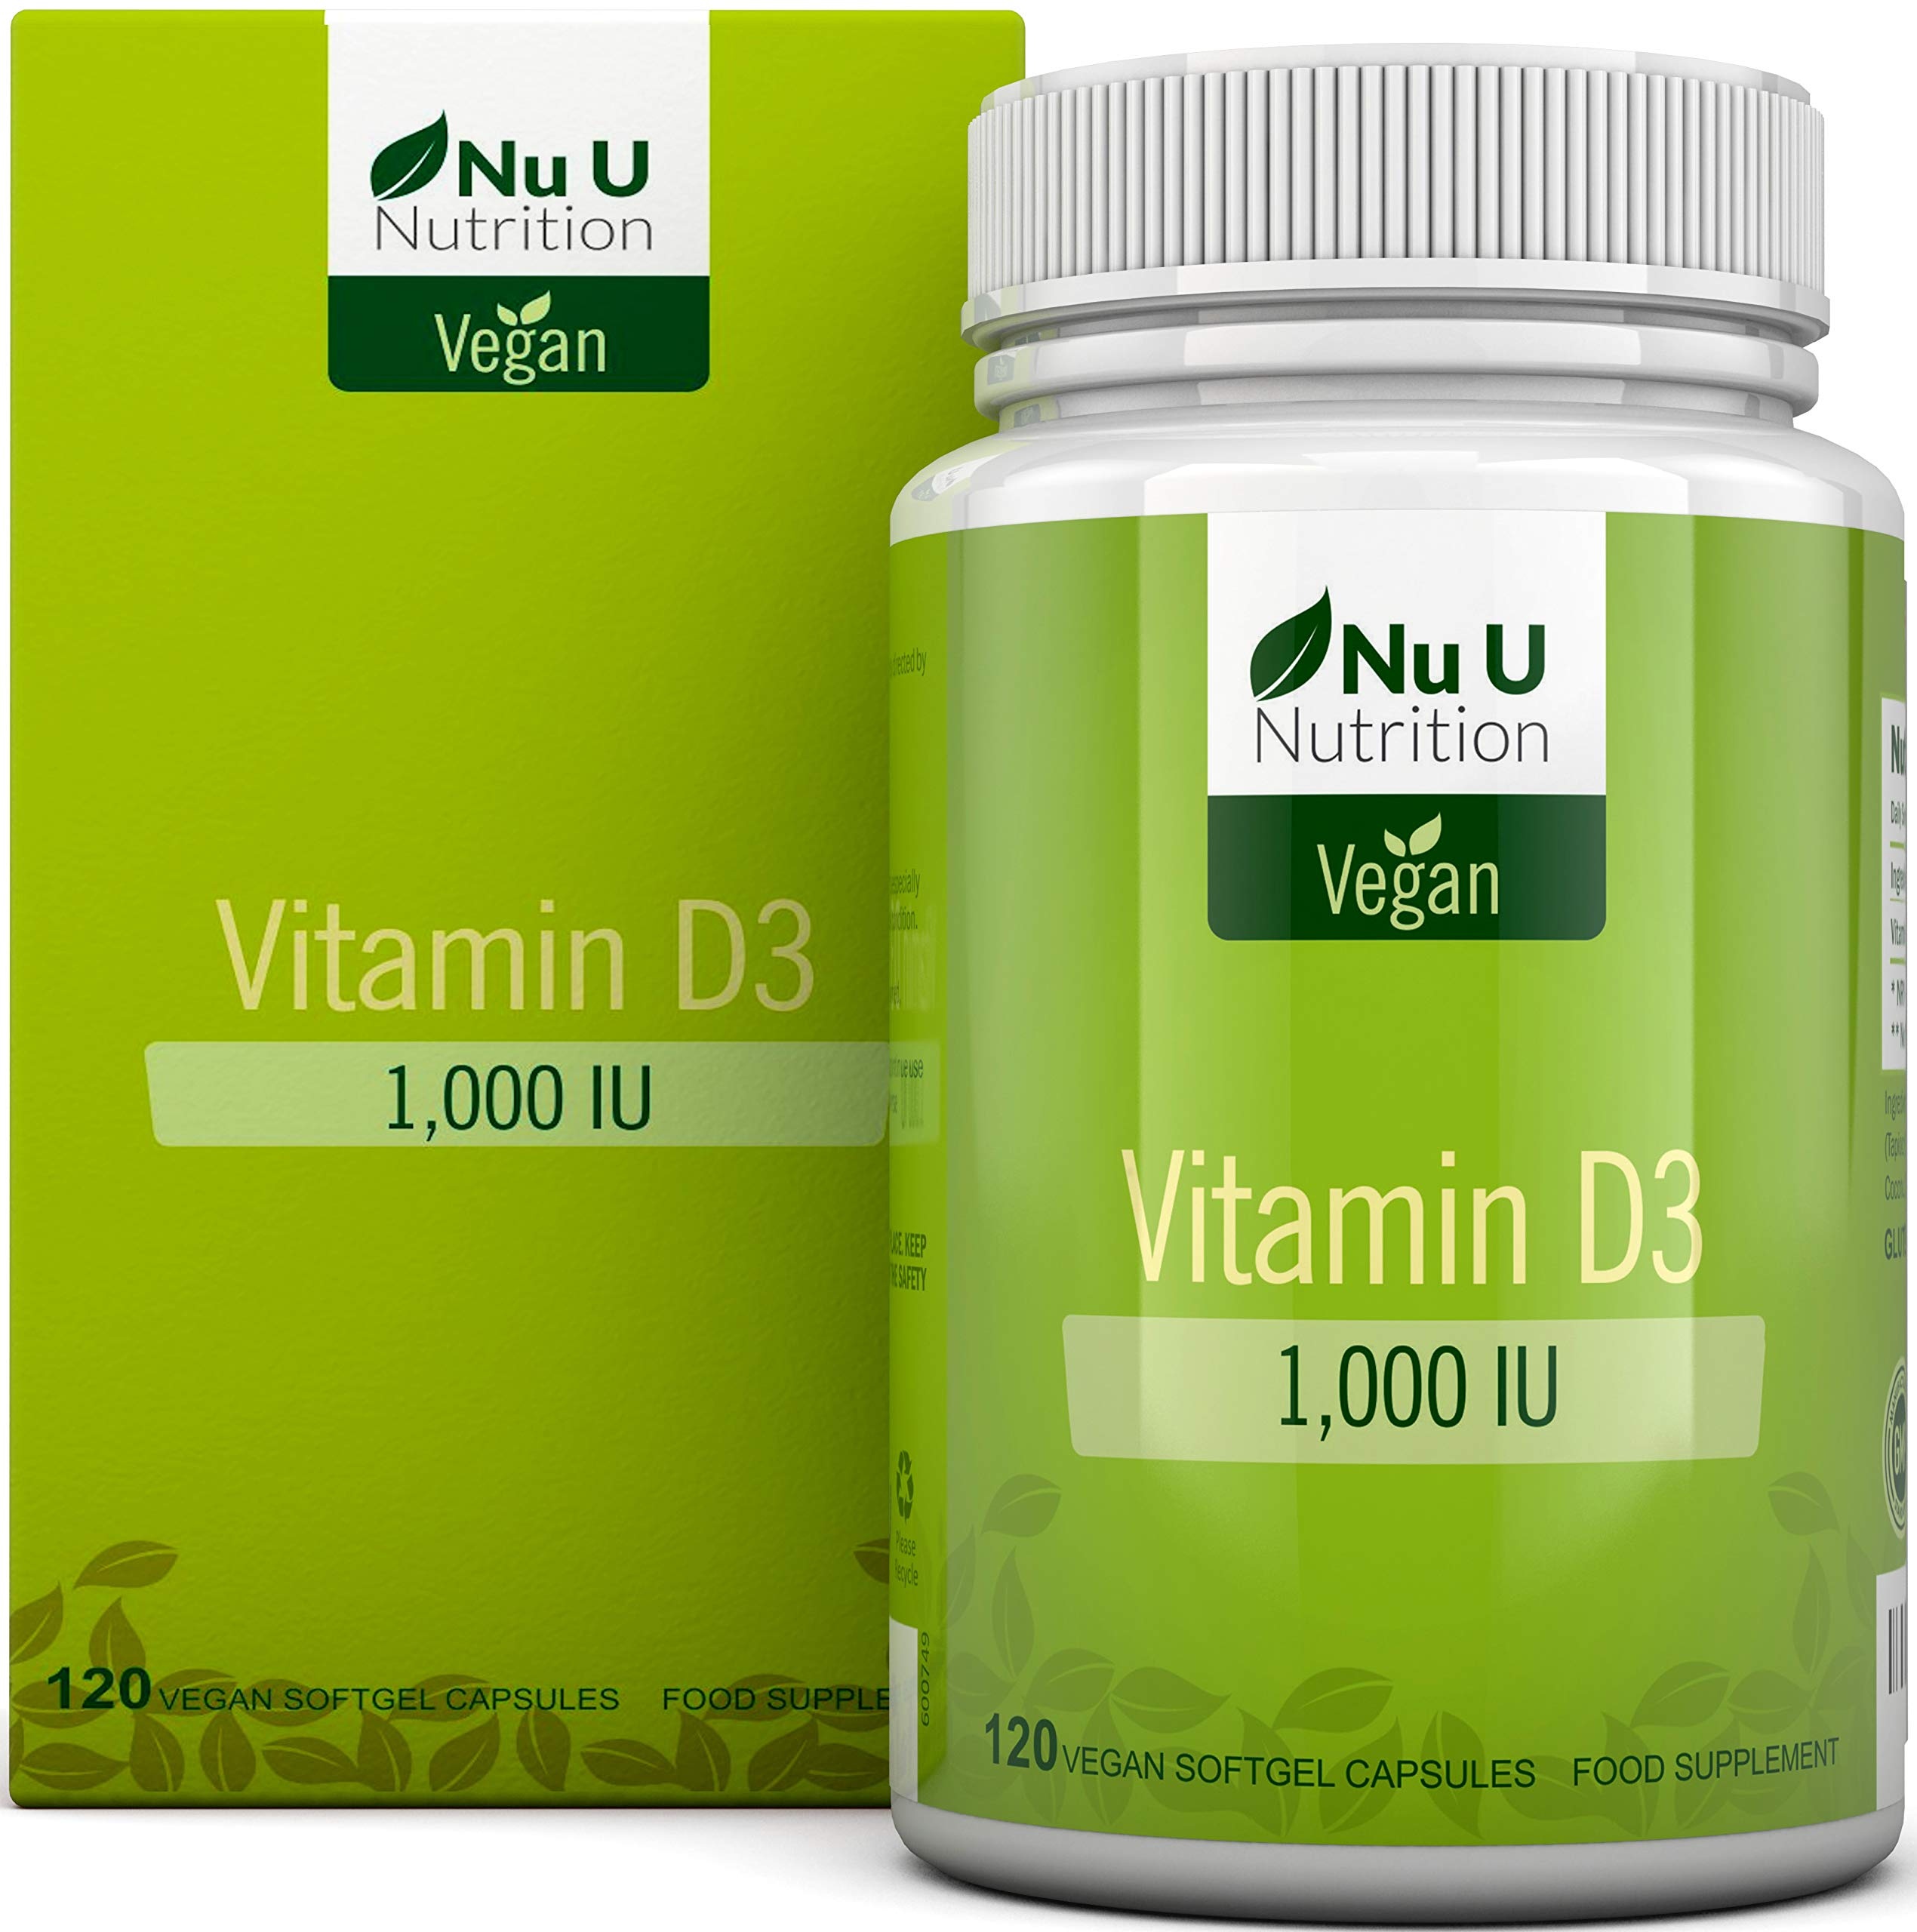 Vitamin D3 Vegan 1,000 IU | 120 Softgels - 4 Month's Supply | Allergen & GMO Free Vitamin D Supplement with Extra Virgin Olive Oil | Made in The UK by Nu U Nutrition product image